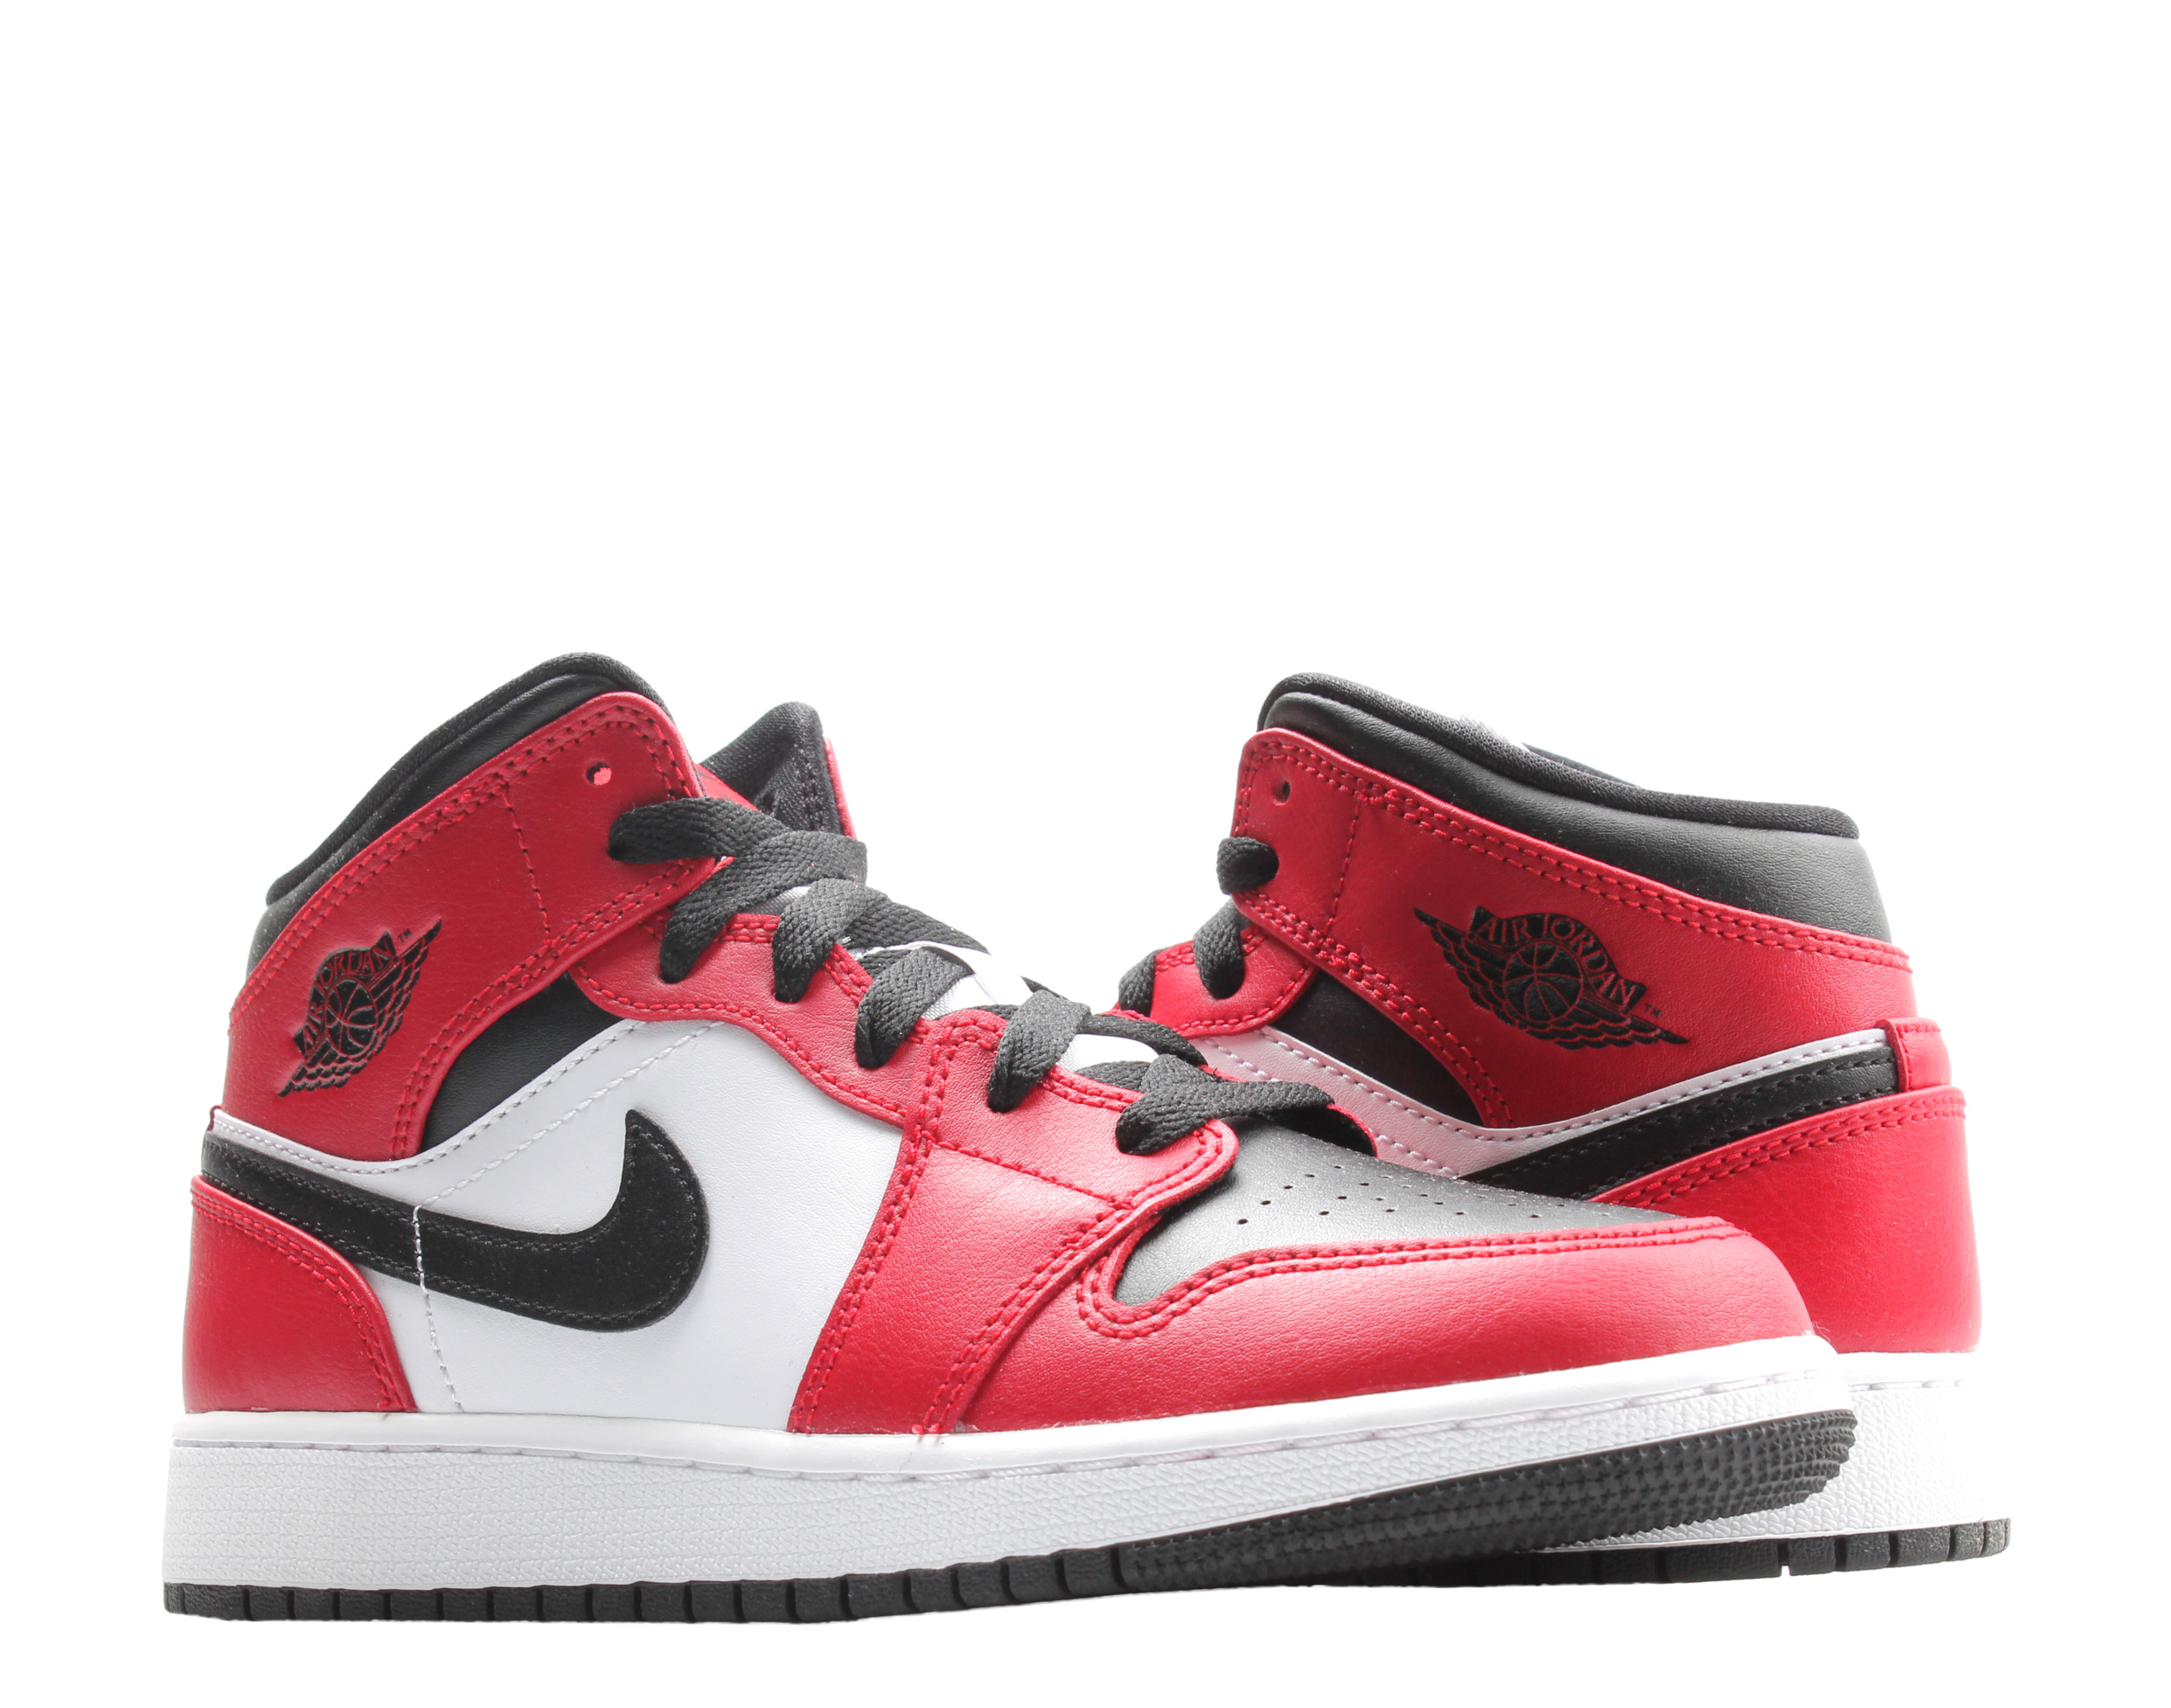 Details about Nike Air Jordan 1 Mid (GS) Black Toe Bred Black/Red Big Kids  Shoes 554725-069